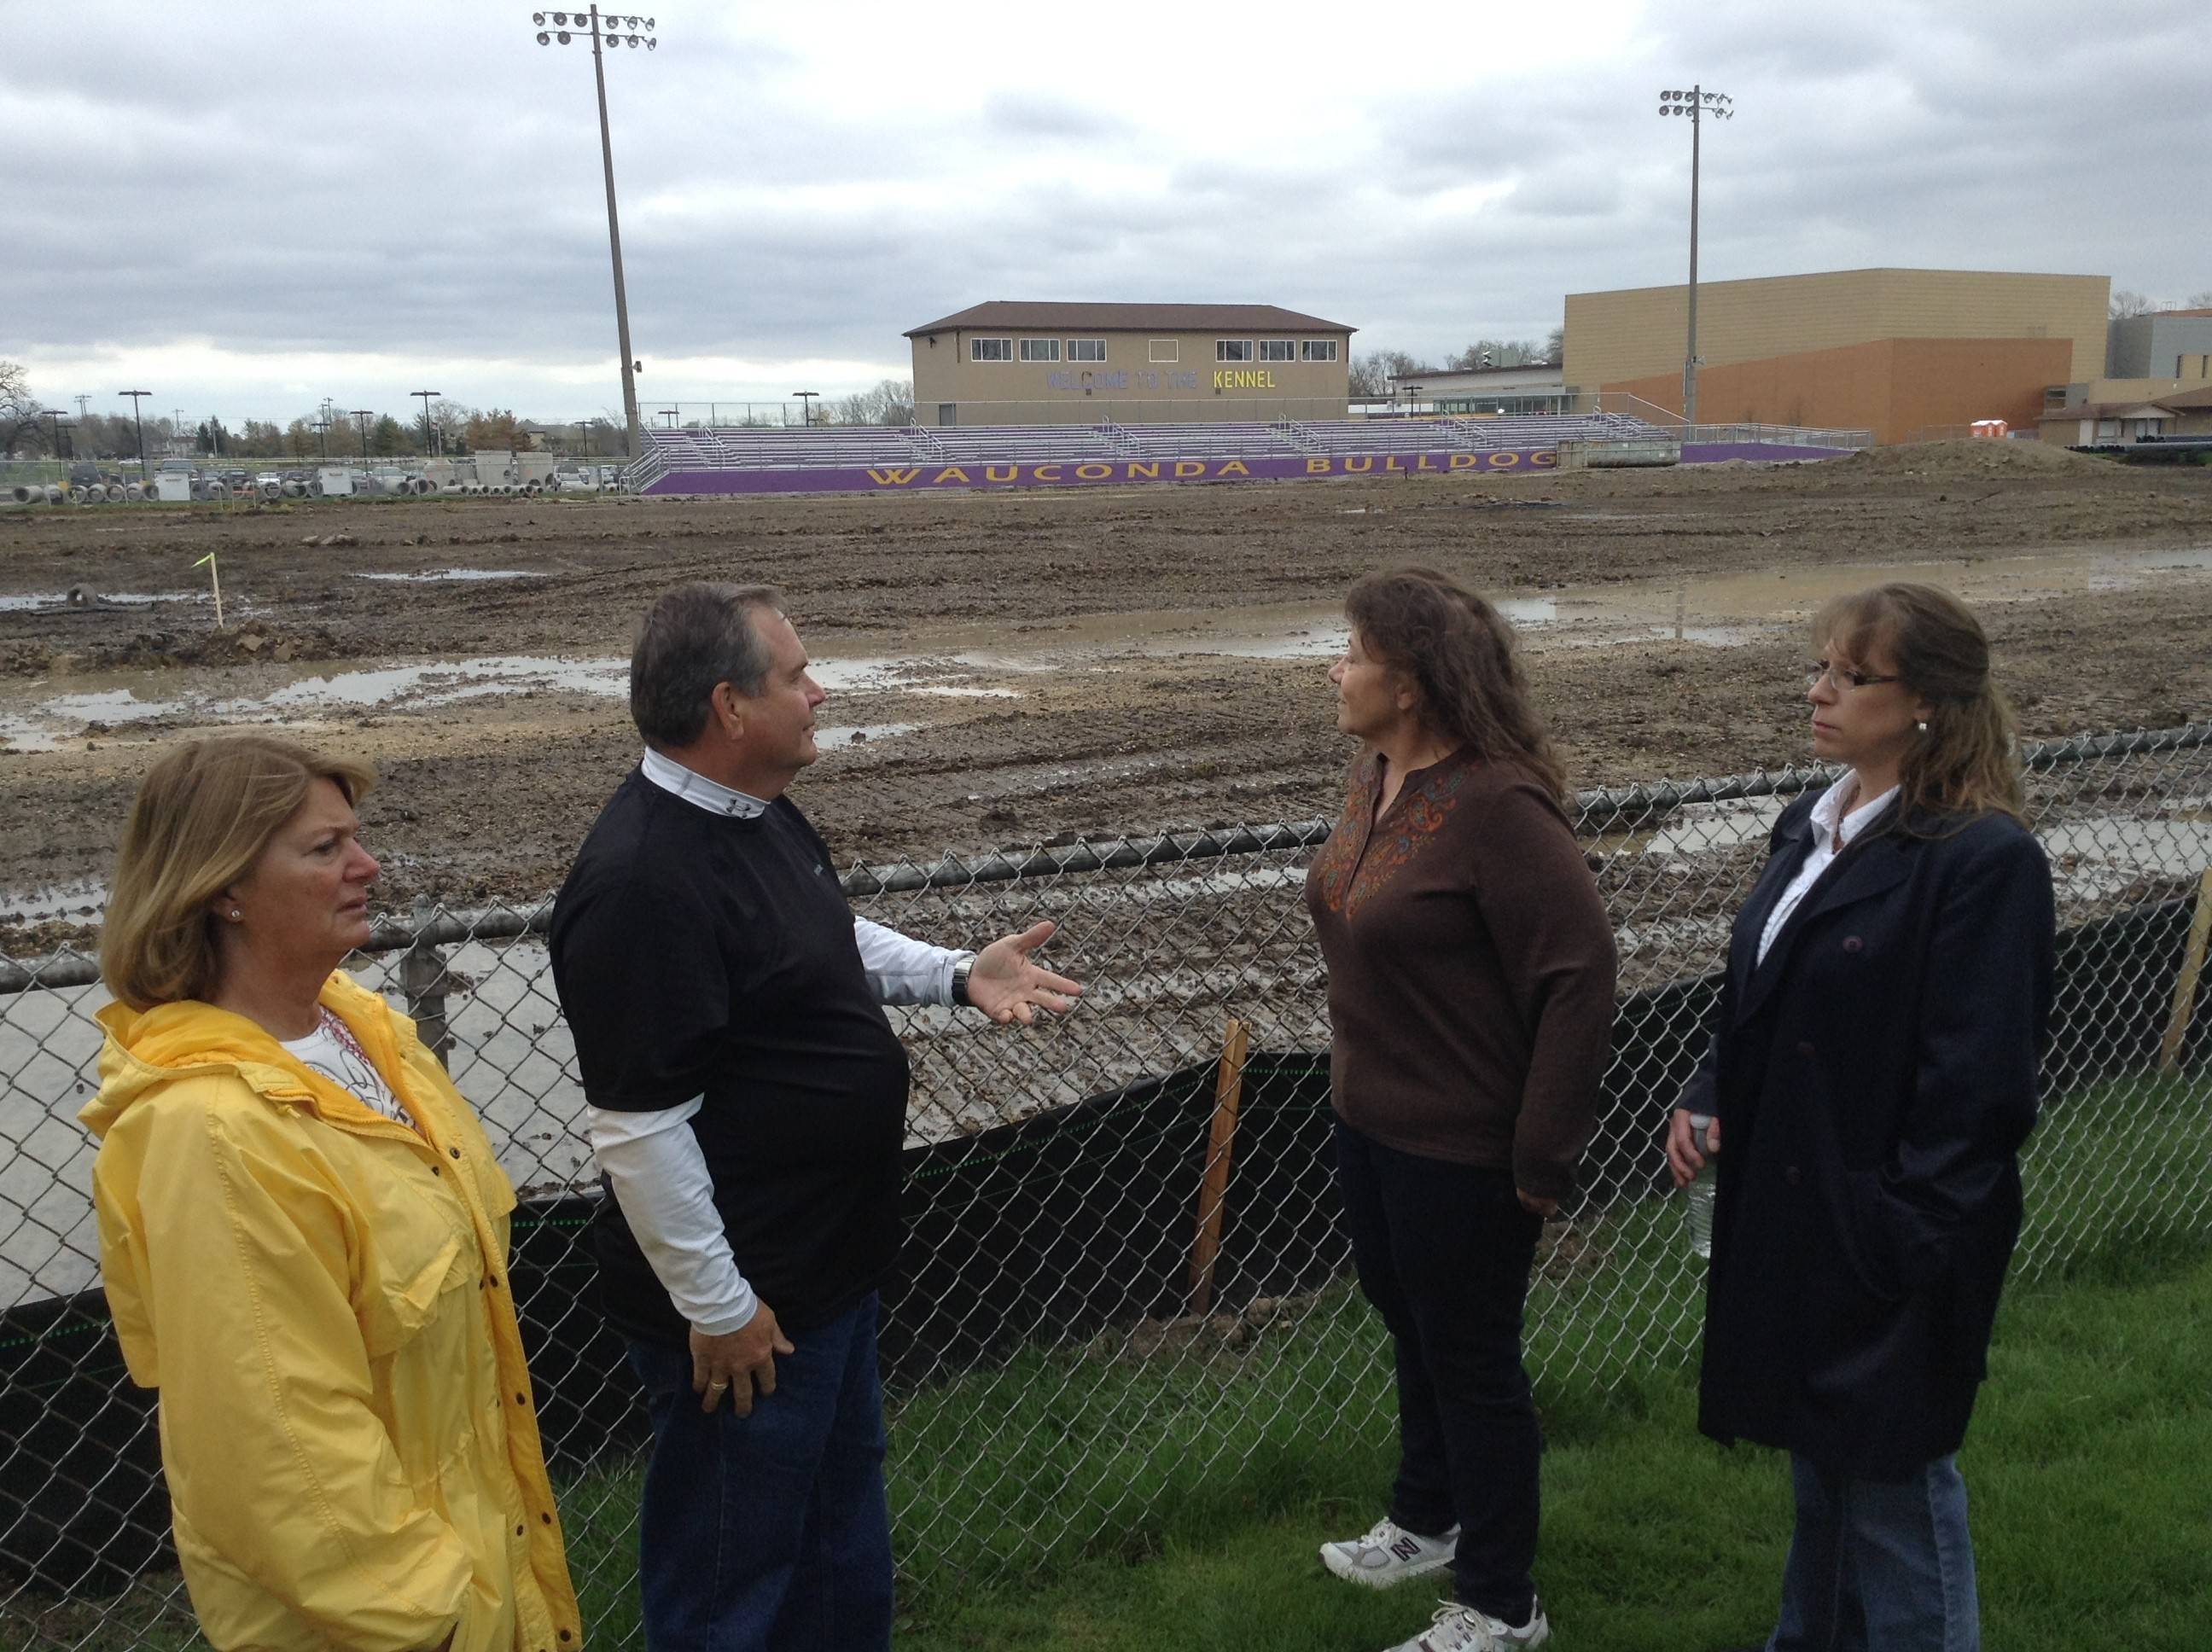 Wauconda resident Gary Thompson talks about the plan to install a new fence around the Wauconda High School football stadium as his wife, Cheryl, and neighbors Darlene Hayden and Jennifer Barr listen.